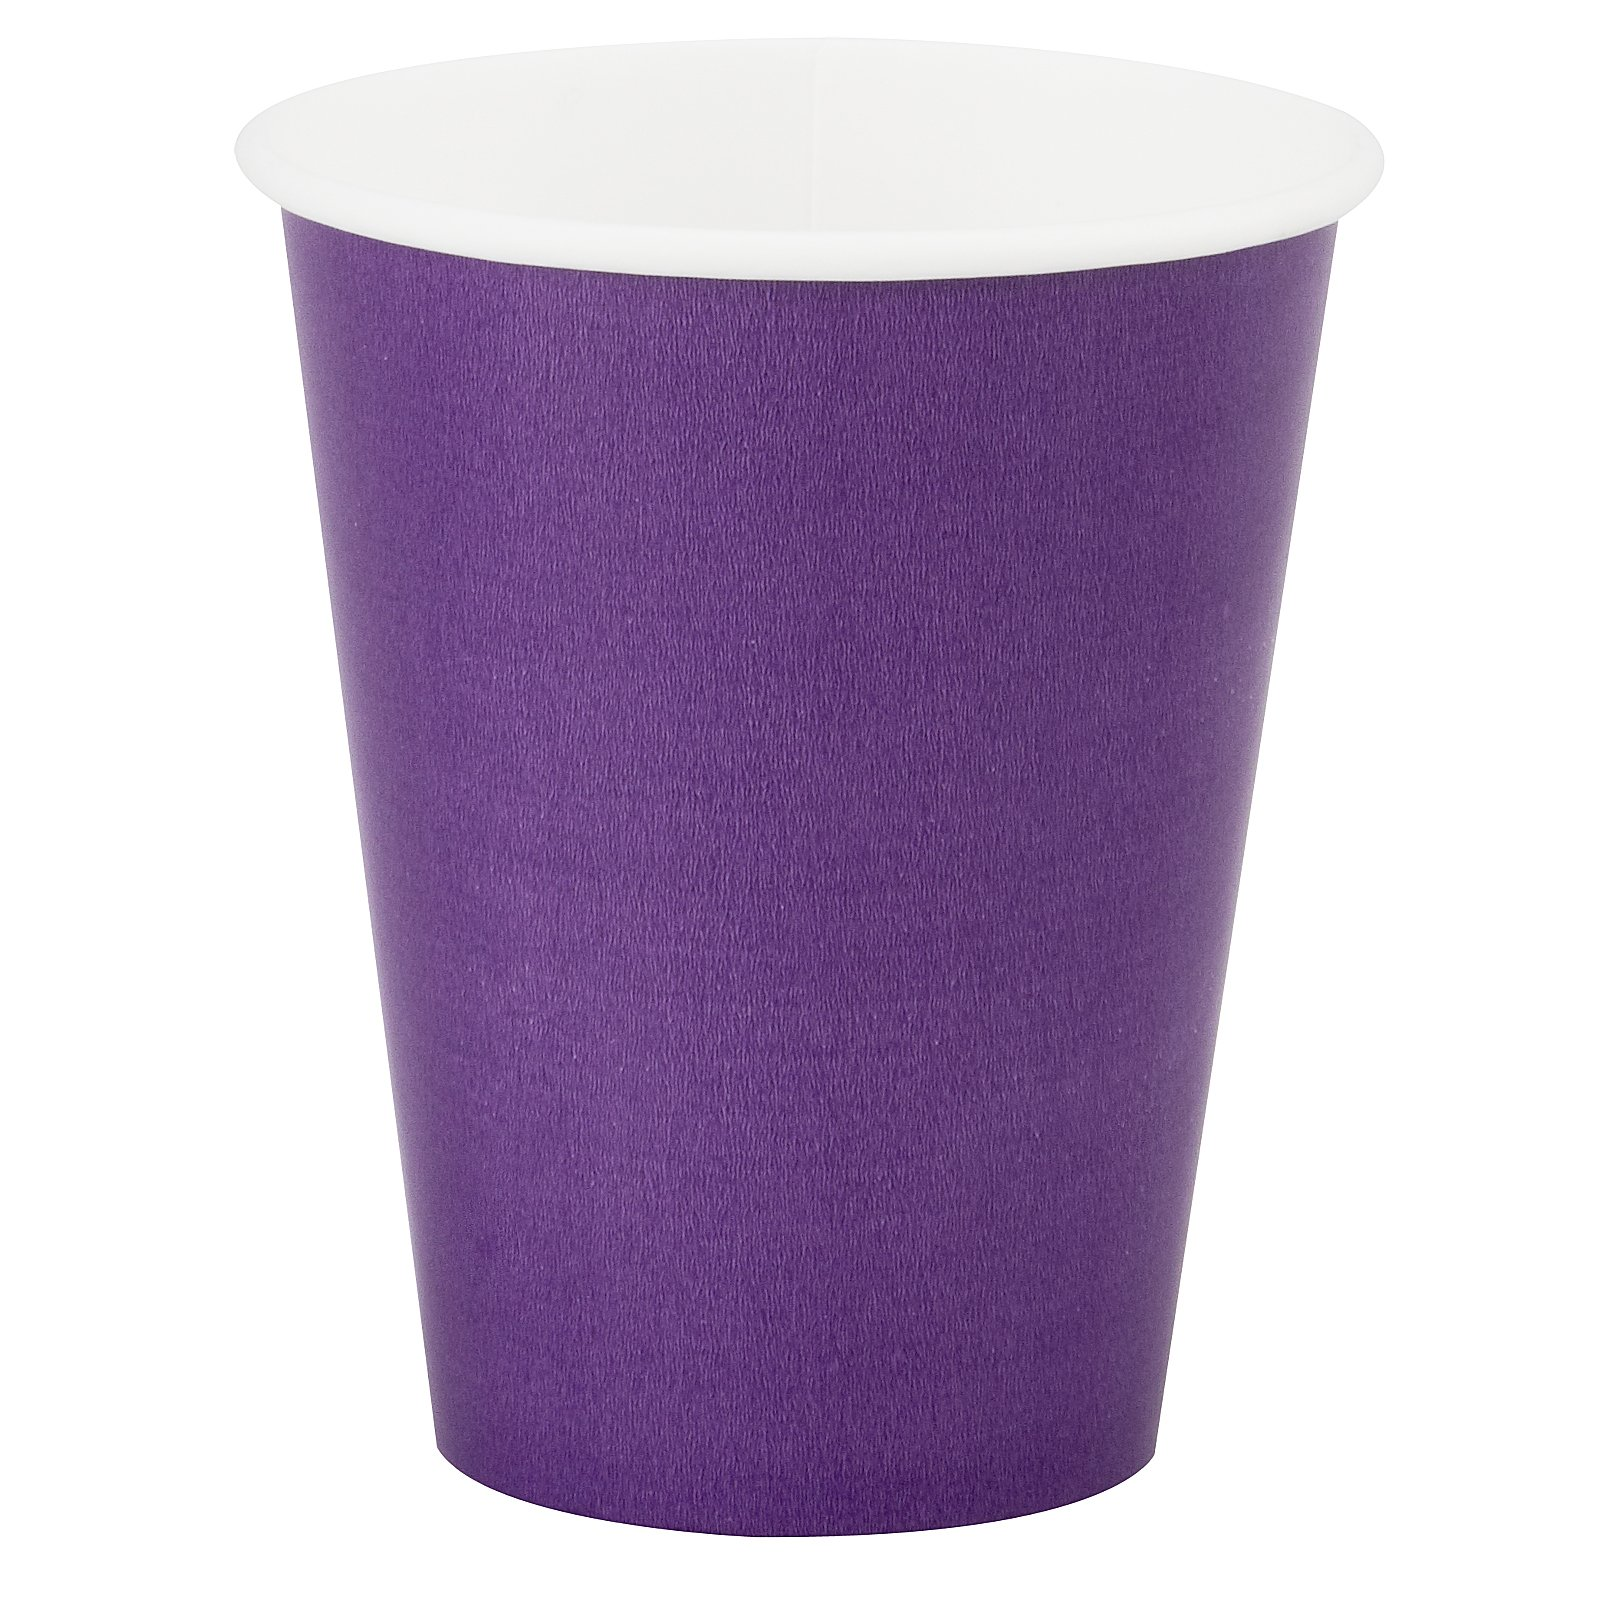 Perfect Purple (Purple) 9 oz. Paper Cups (24 count)